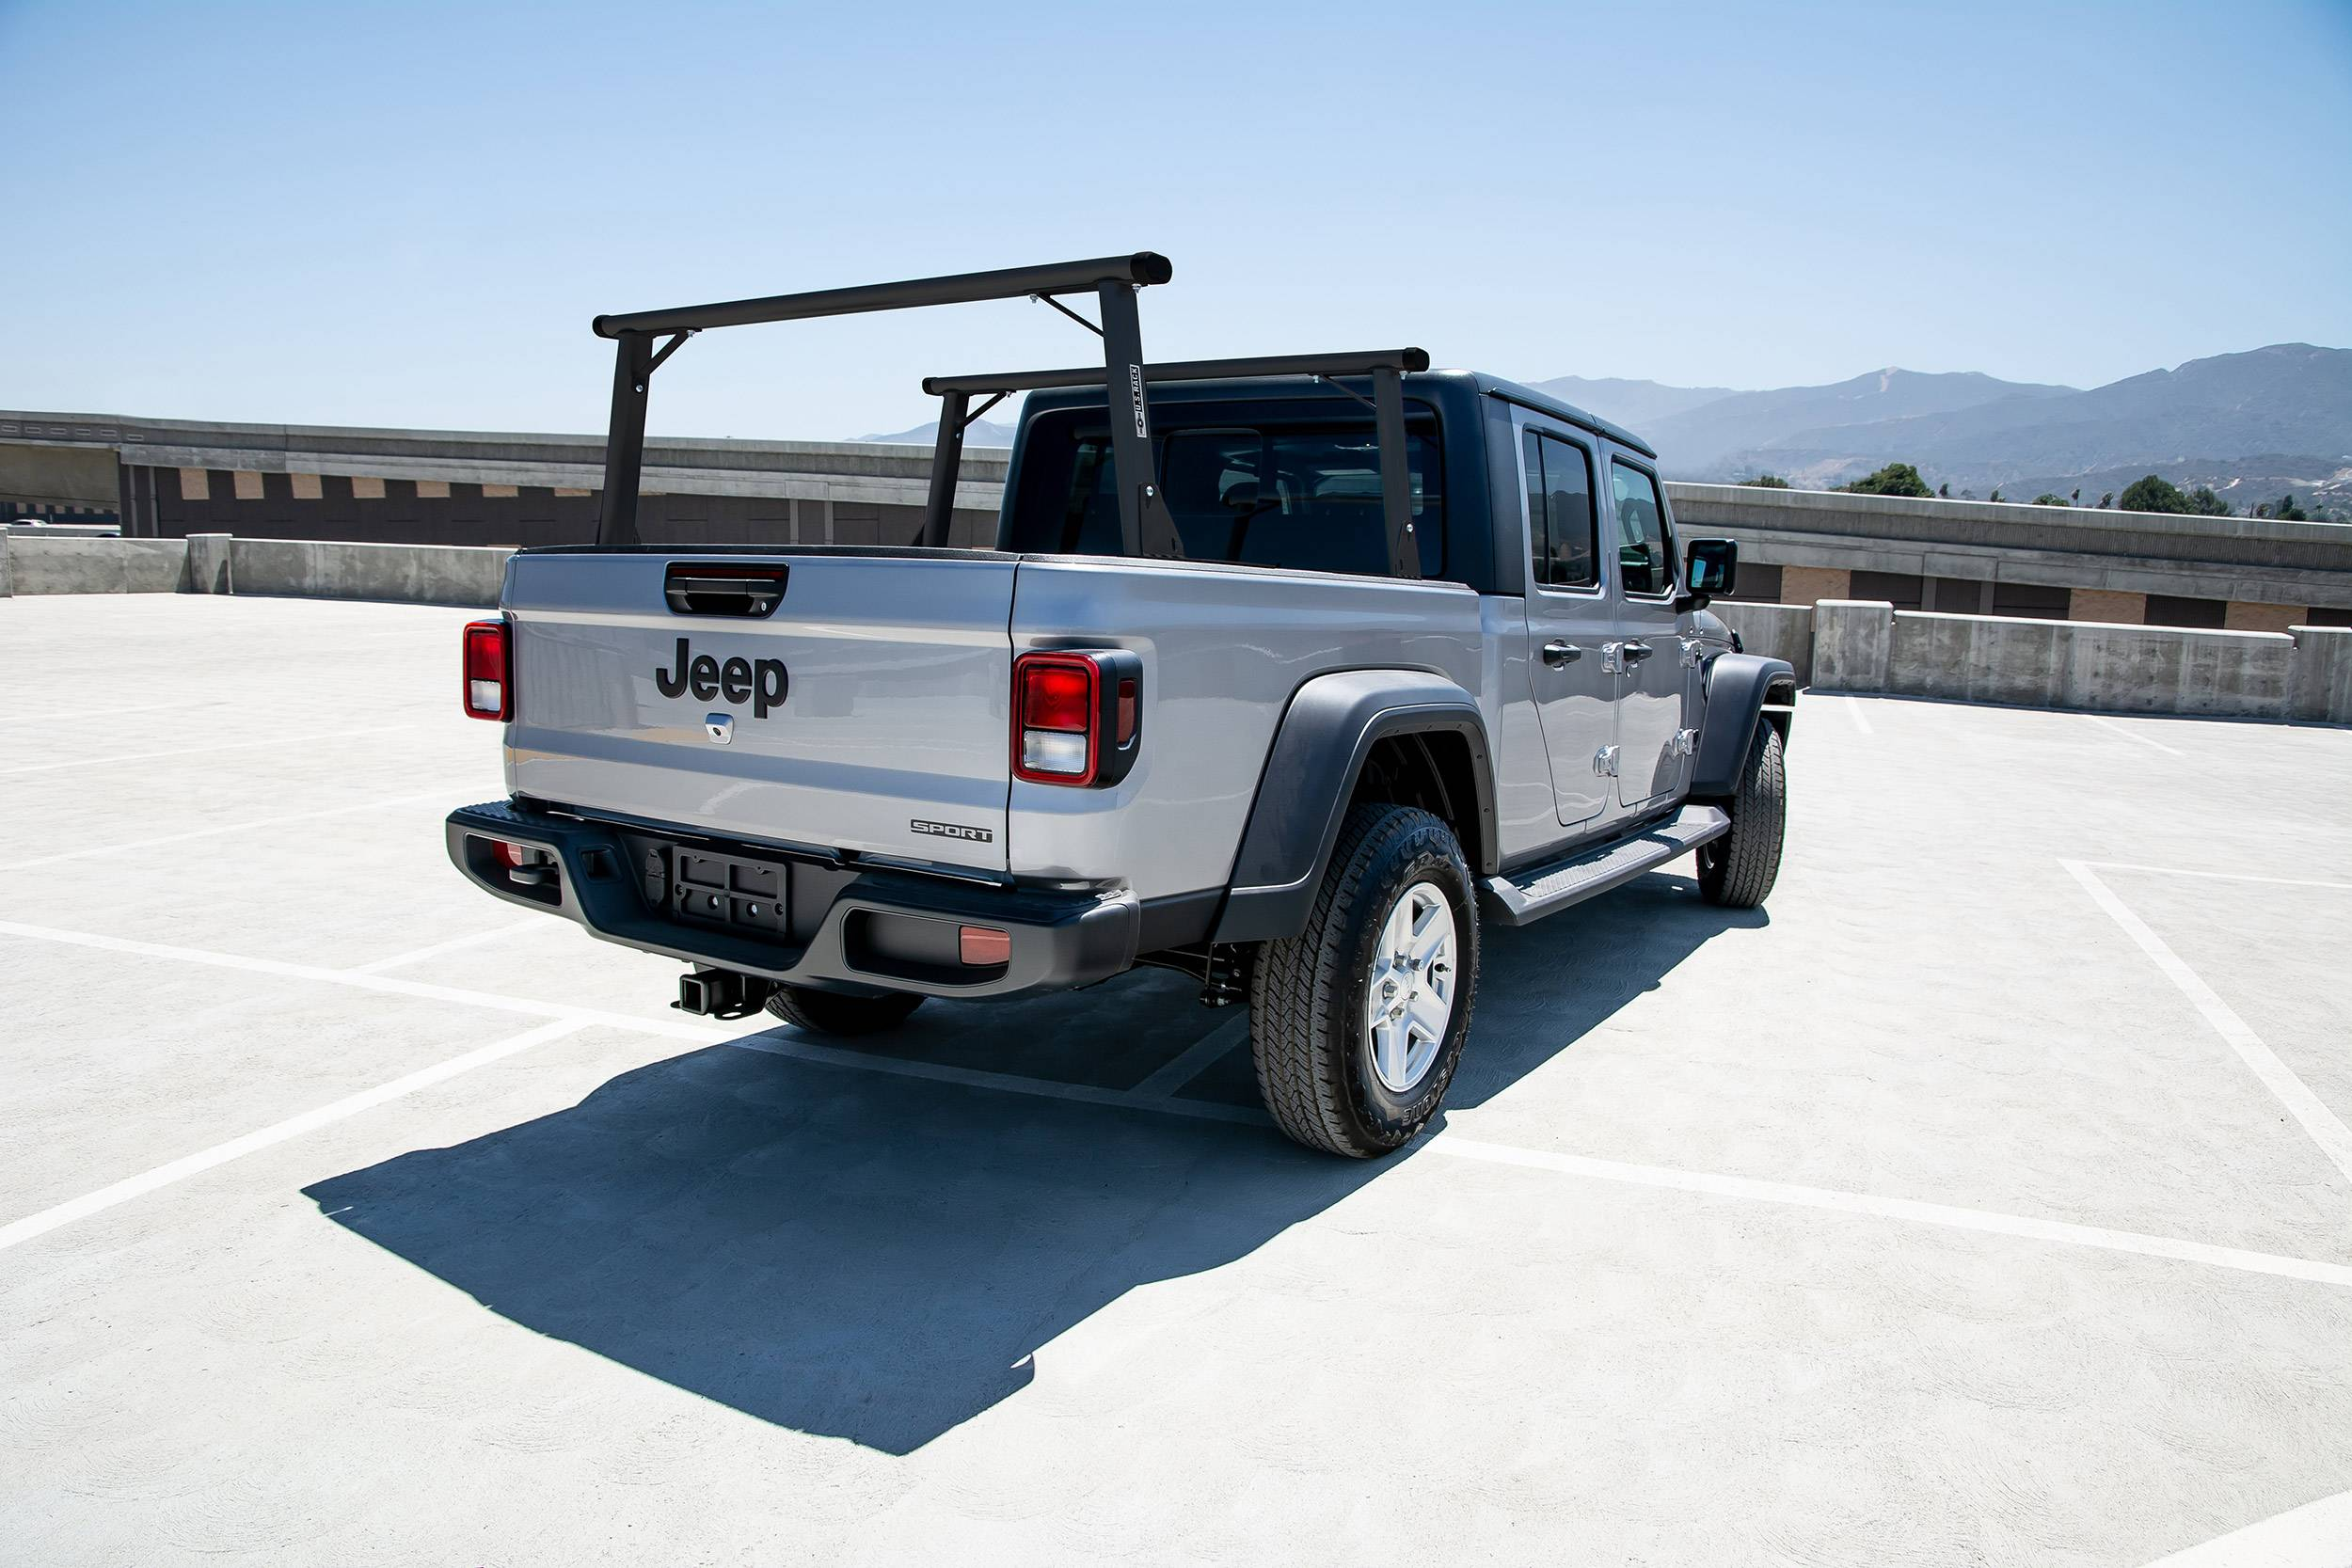 2020-2021 Jeep Gladiator Clipper Truck Rack, Fleetside, Track System, Cab Height, All Black Cross Bar, Legs and Base - PN #82240251